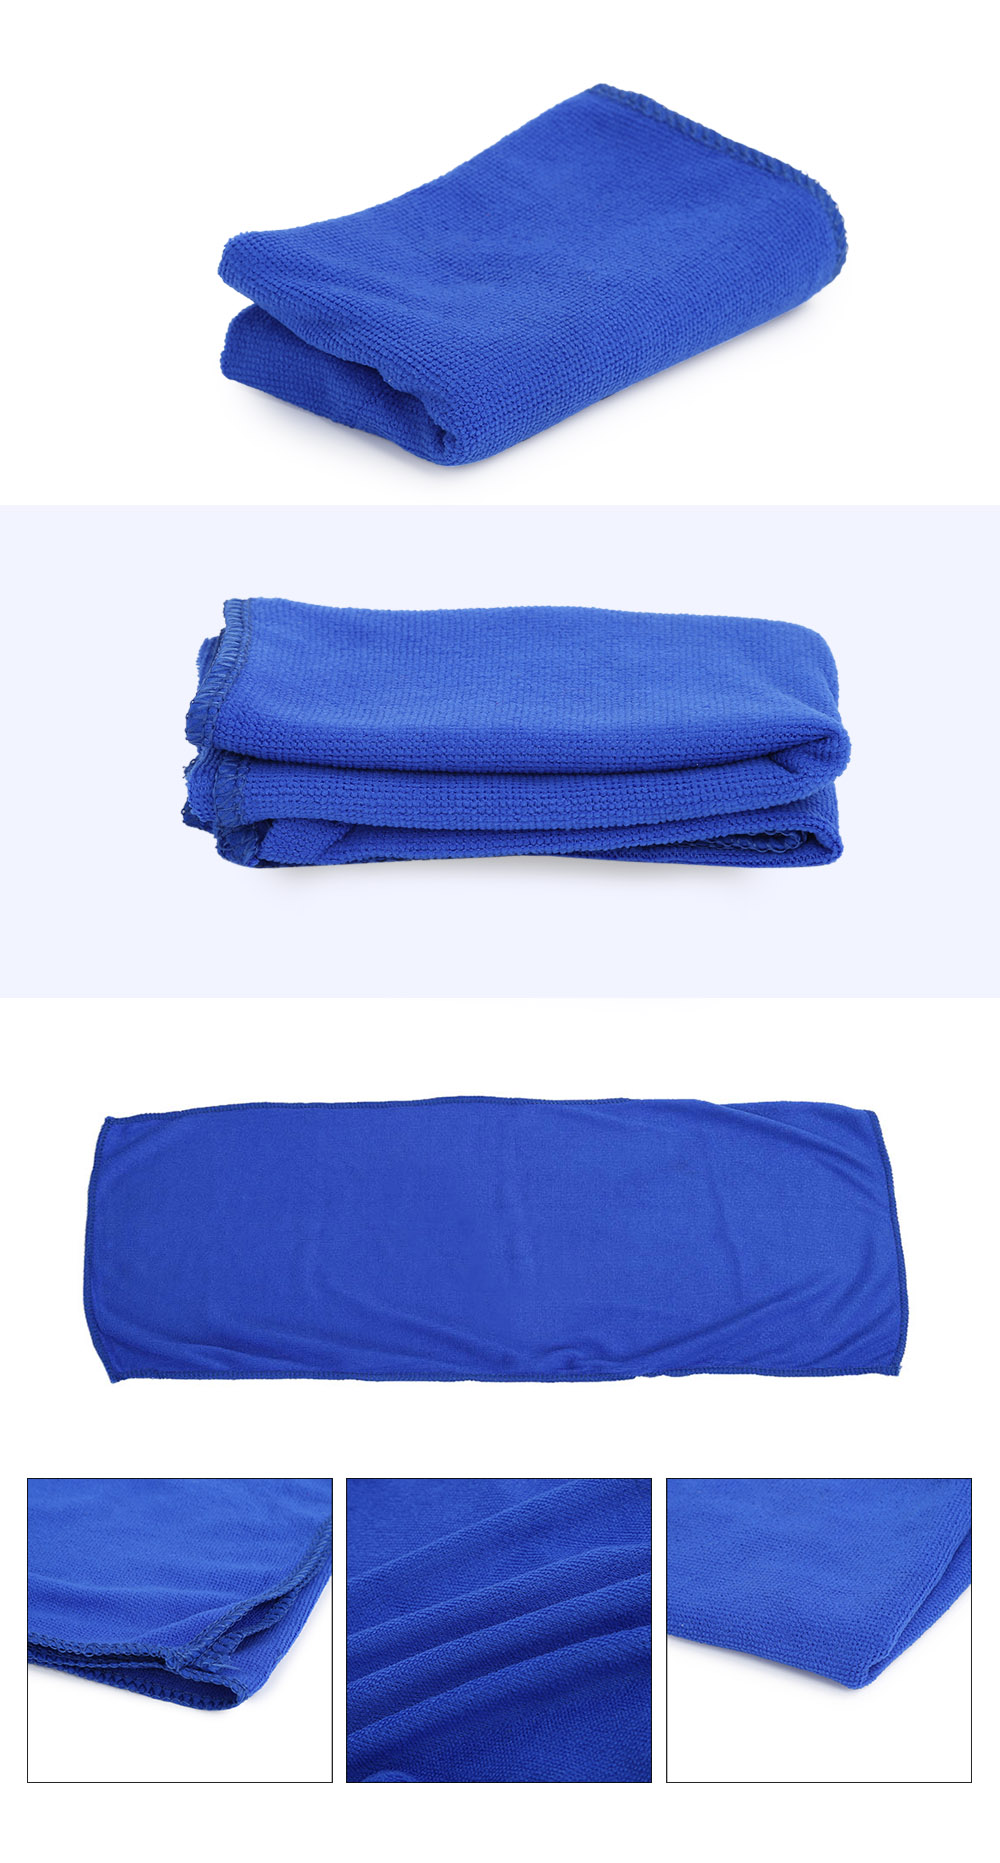 30 x 70cm Multi-purpose Microfiber Cleaning Cloth Absorbent Waxing Towel